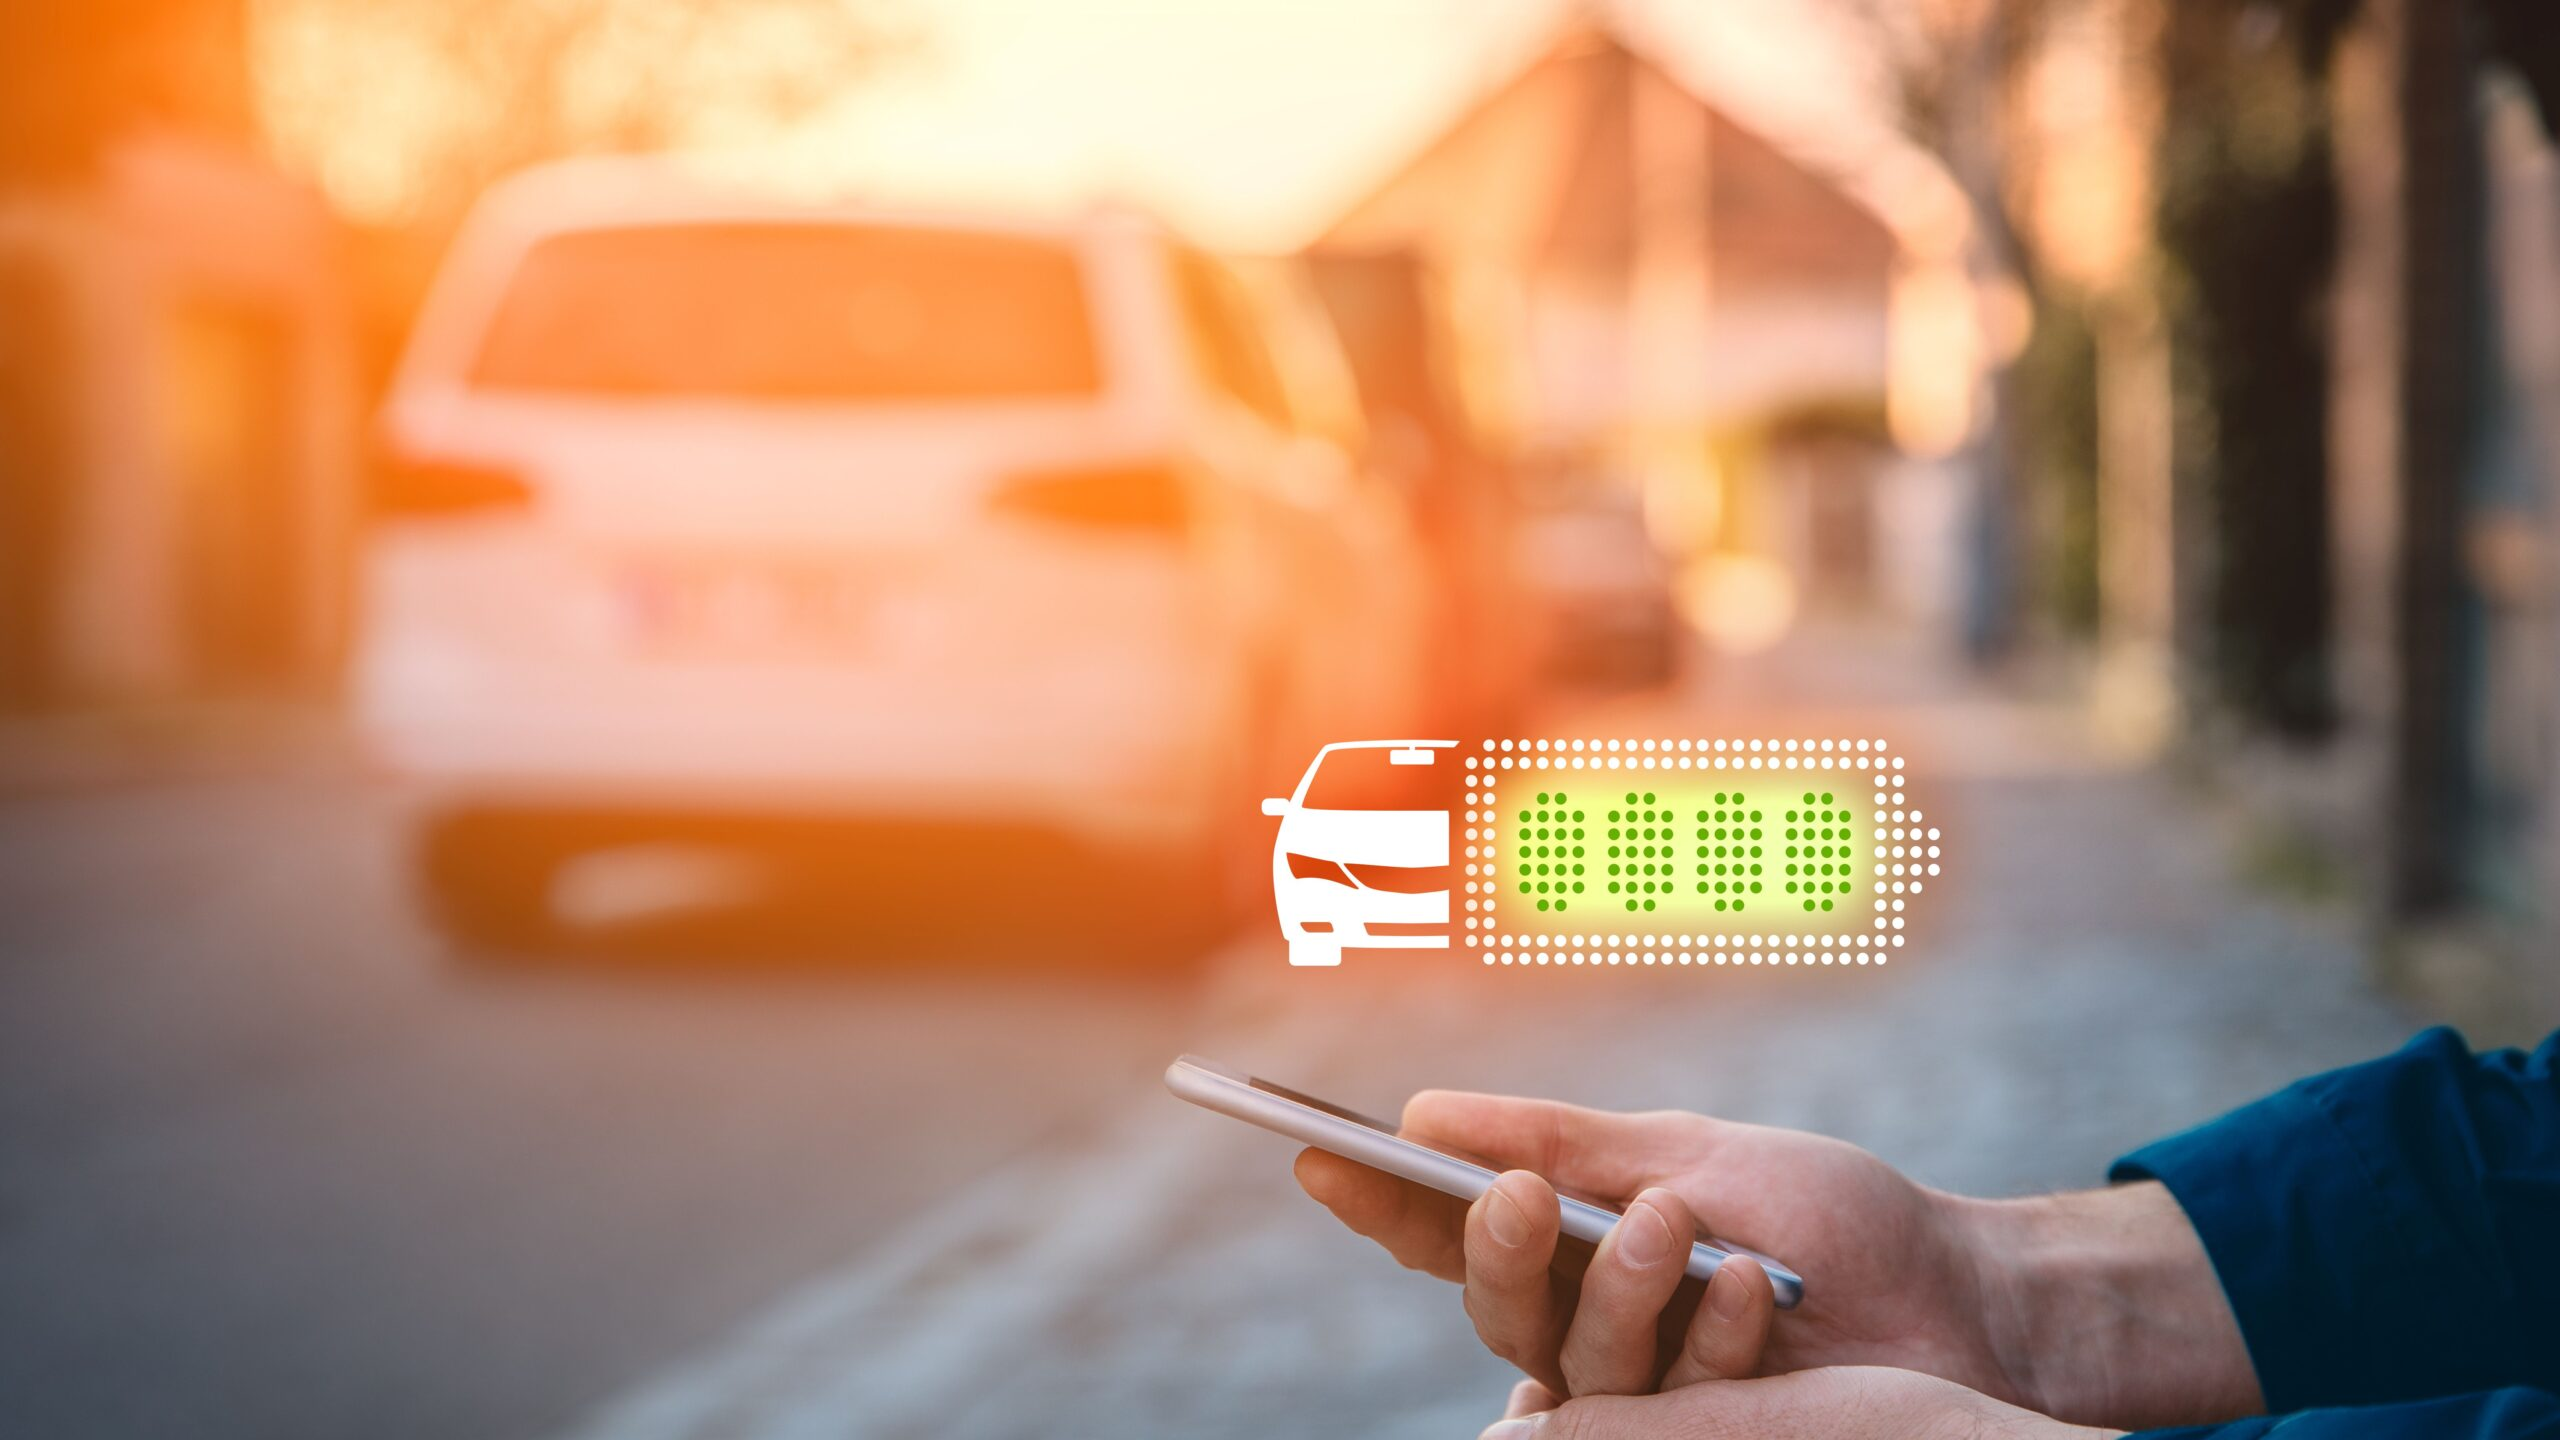 Electric mobility: Range anxiety often unsubstantiated